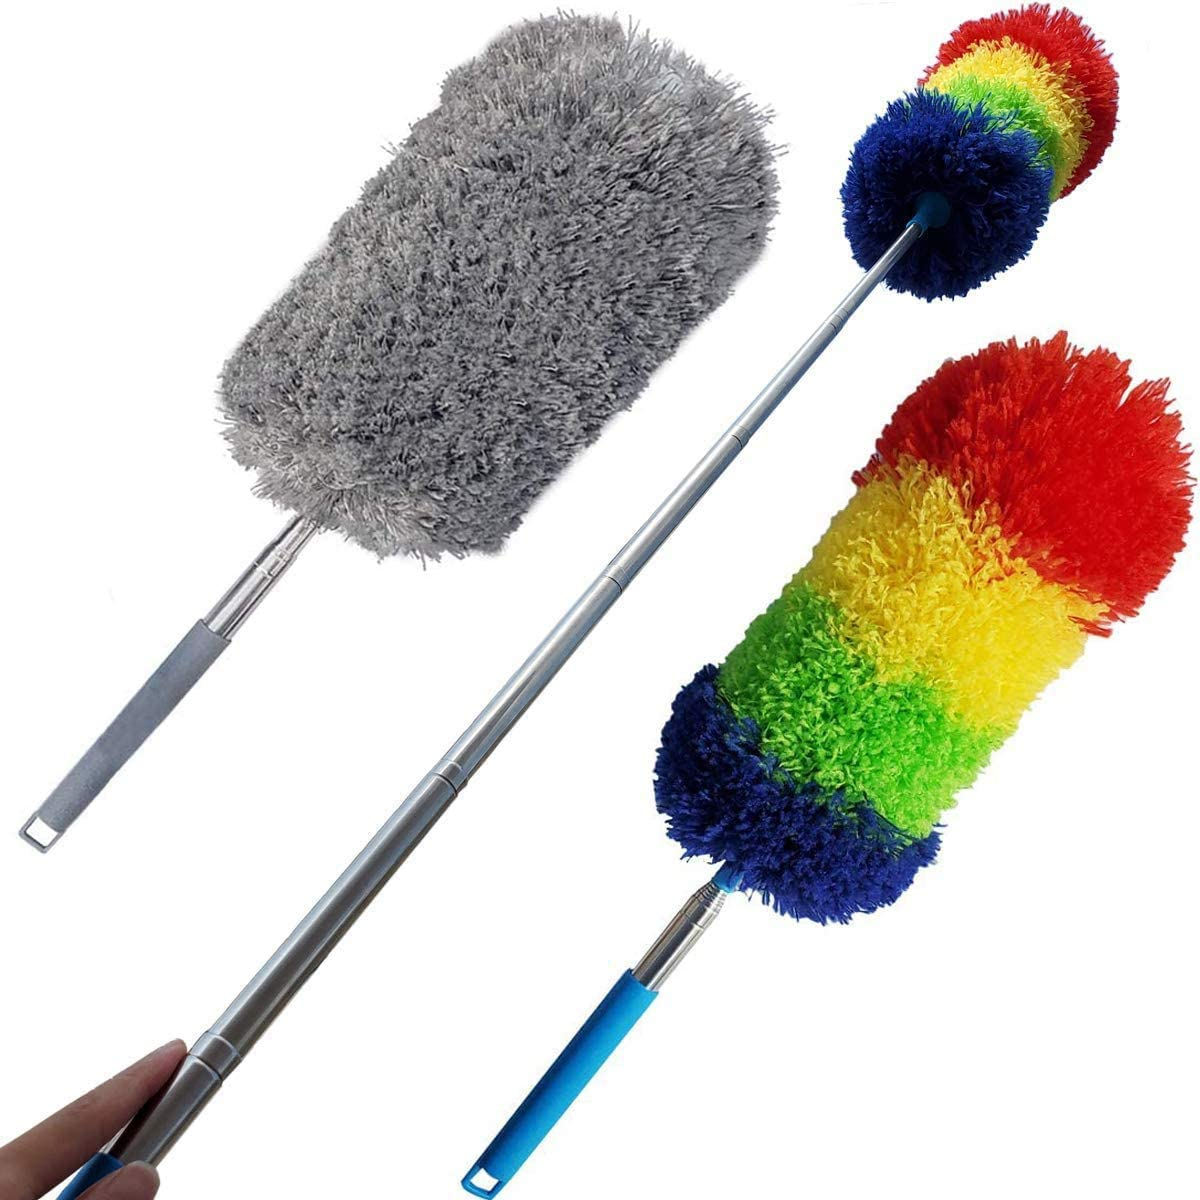 Tonmp 2 PCS Gray + Colorful Telescoping Microfiber Duster Extendable 18in to 48in - Flexible and Extendable Duster for Cleaning Ceiling Fan/Furniture/Keyboard/Cobweb